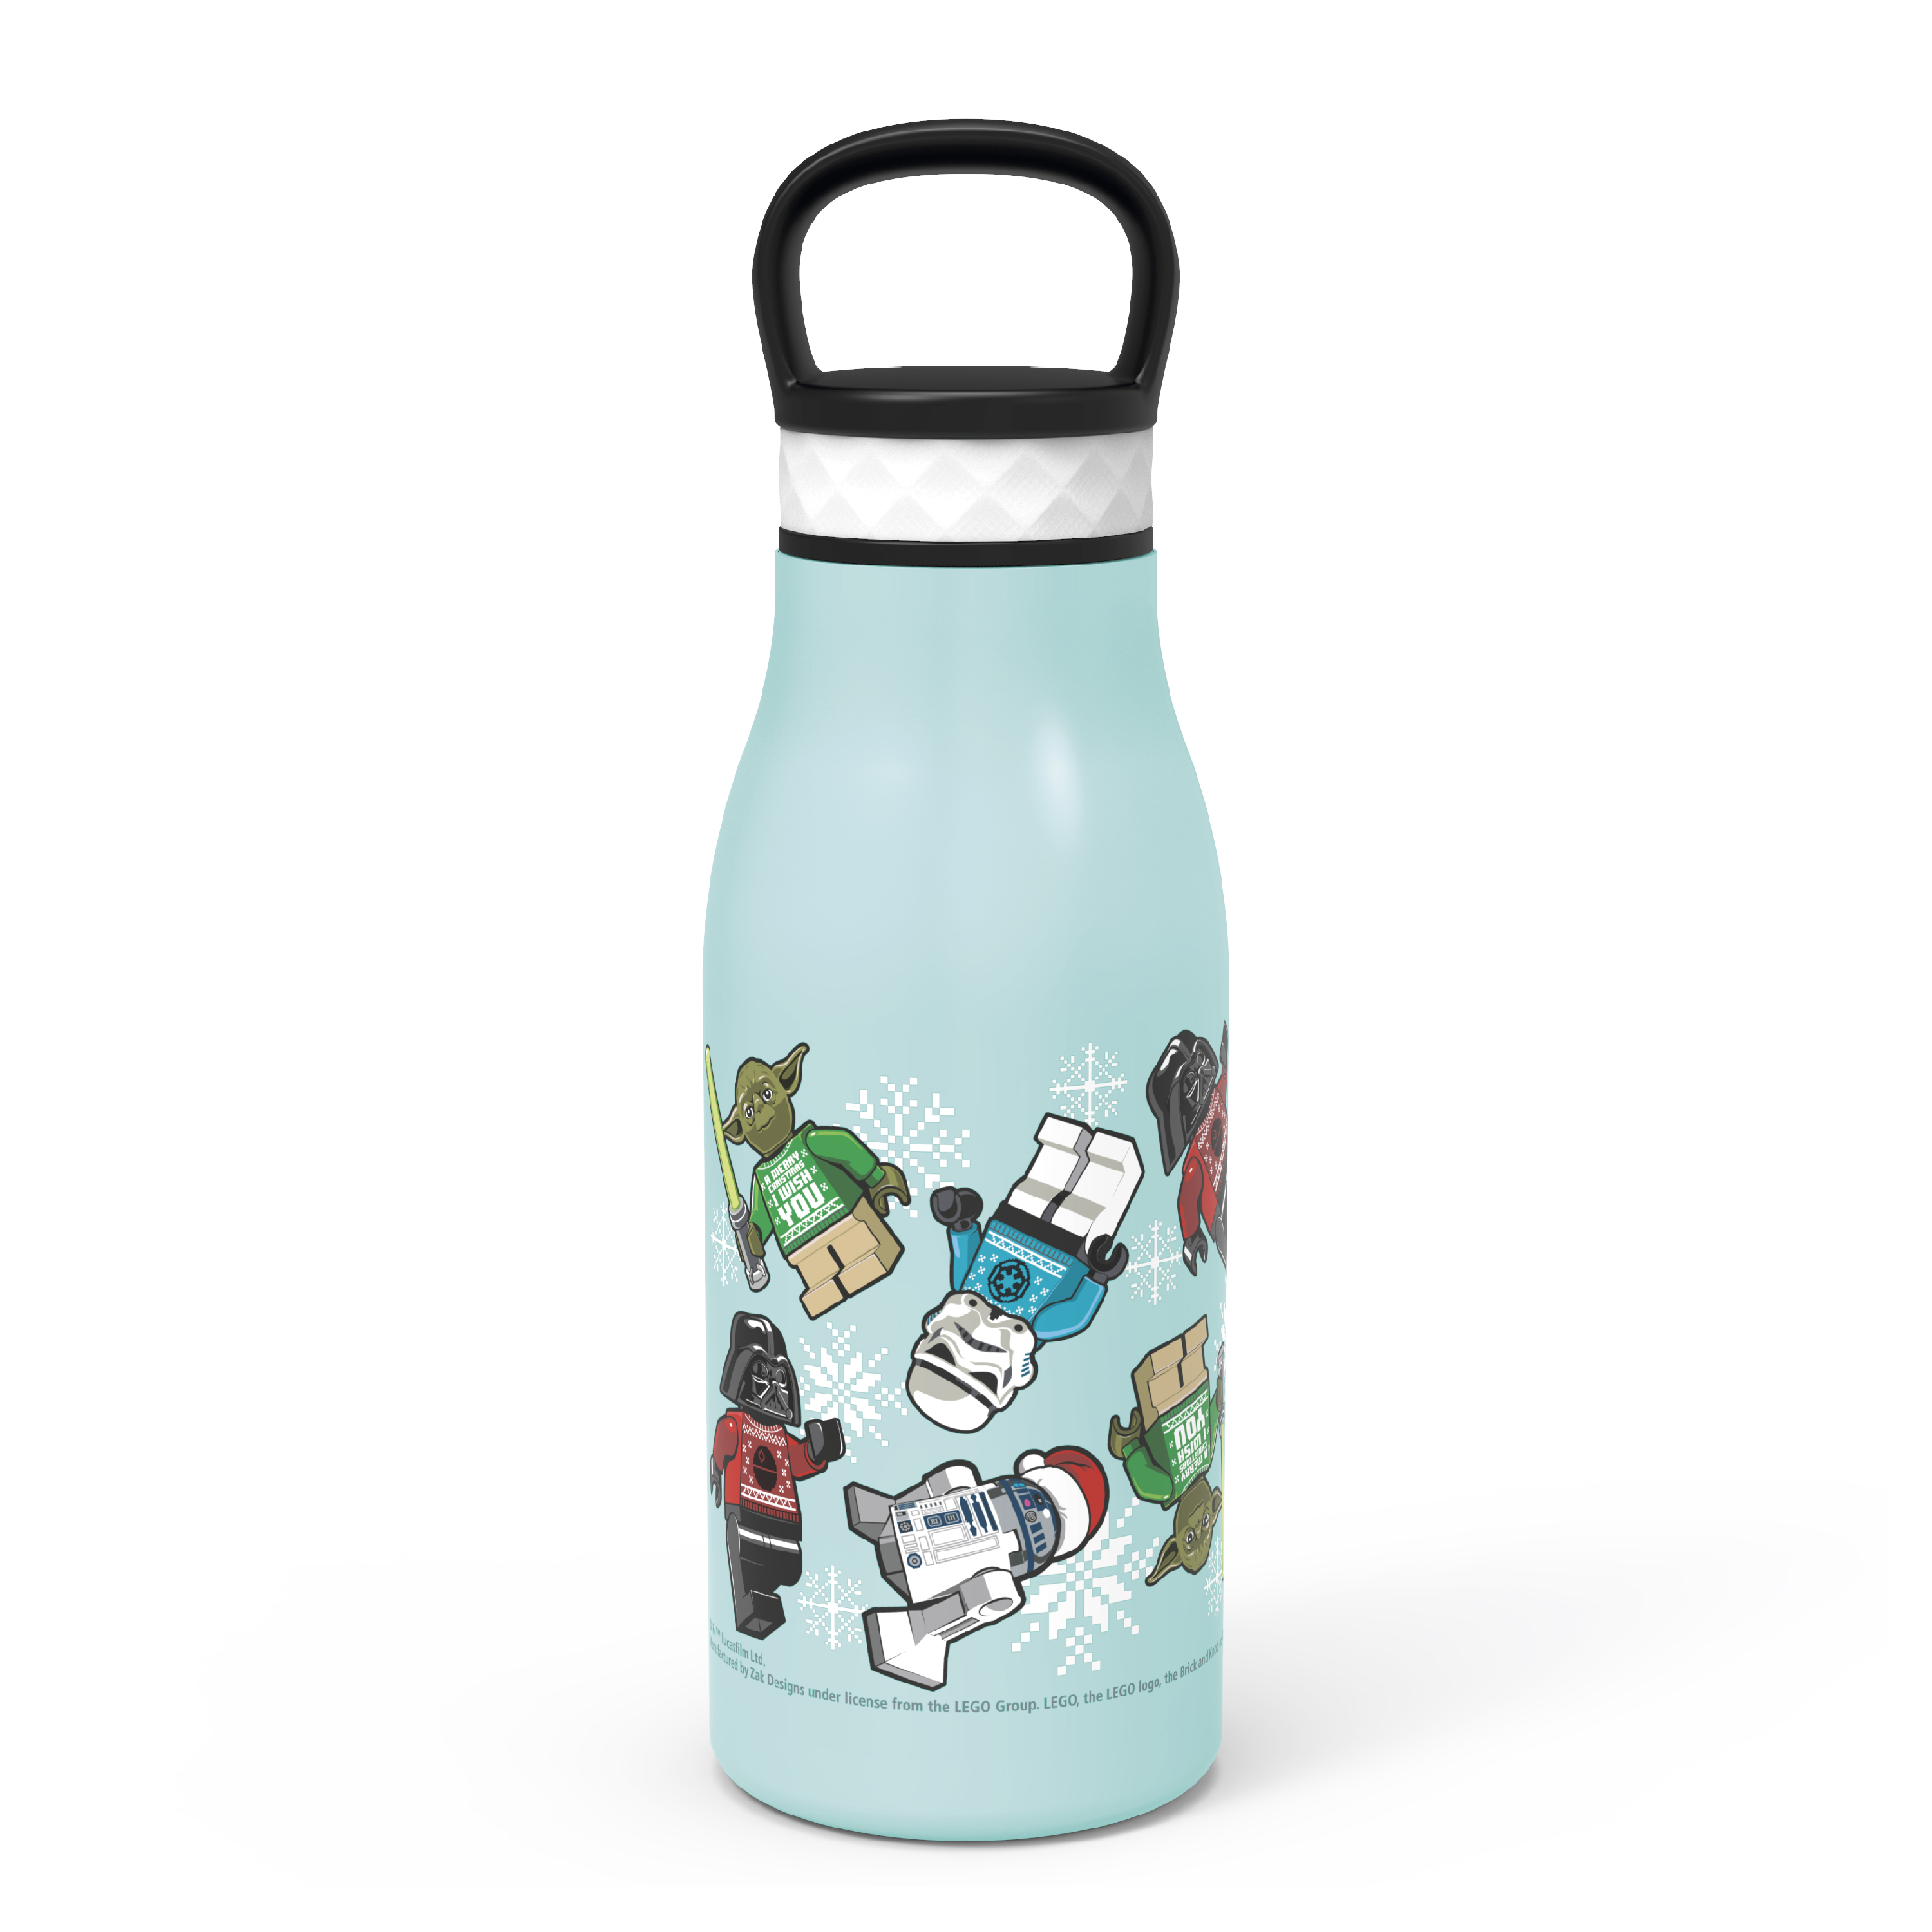 Lego Star Wars 12 ounce Stainless Steel Vacuum Insulated Water Bottle, Darth Vader, Stormtroopers and Yoda slideshow image 5